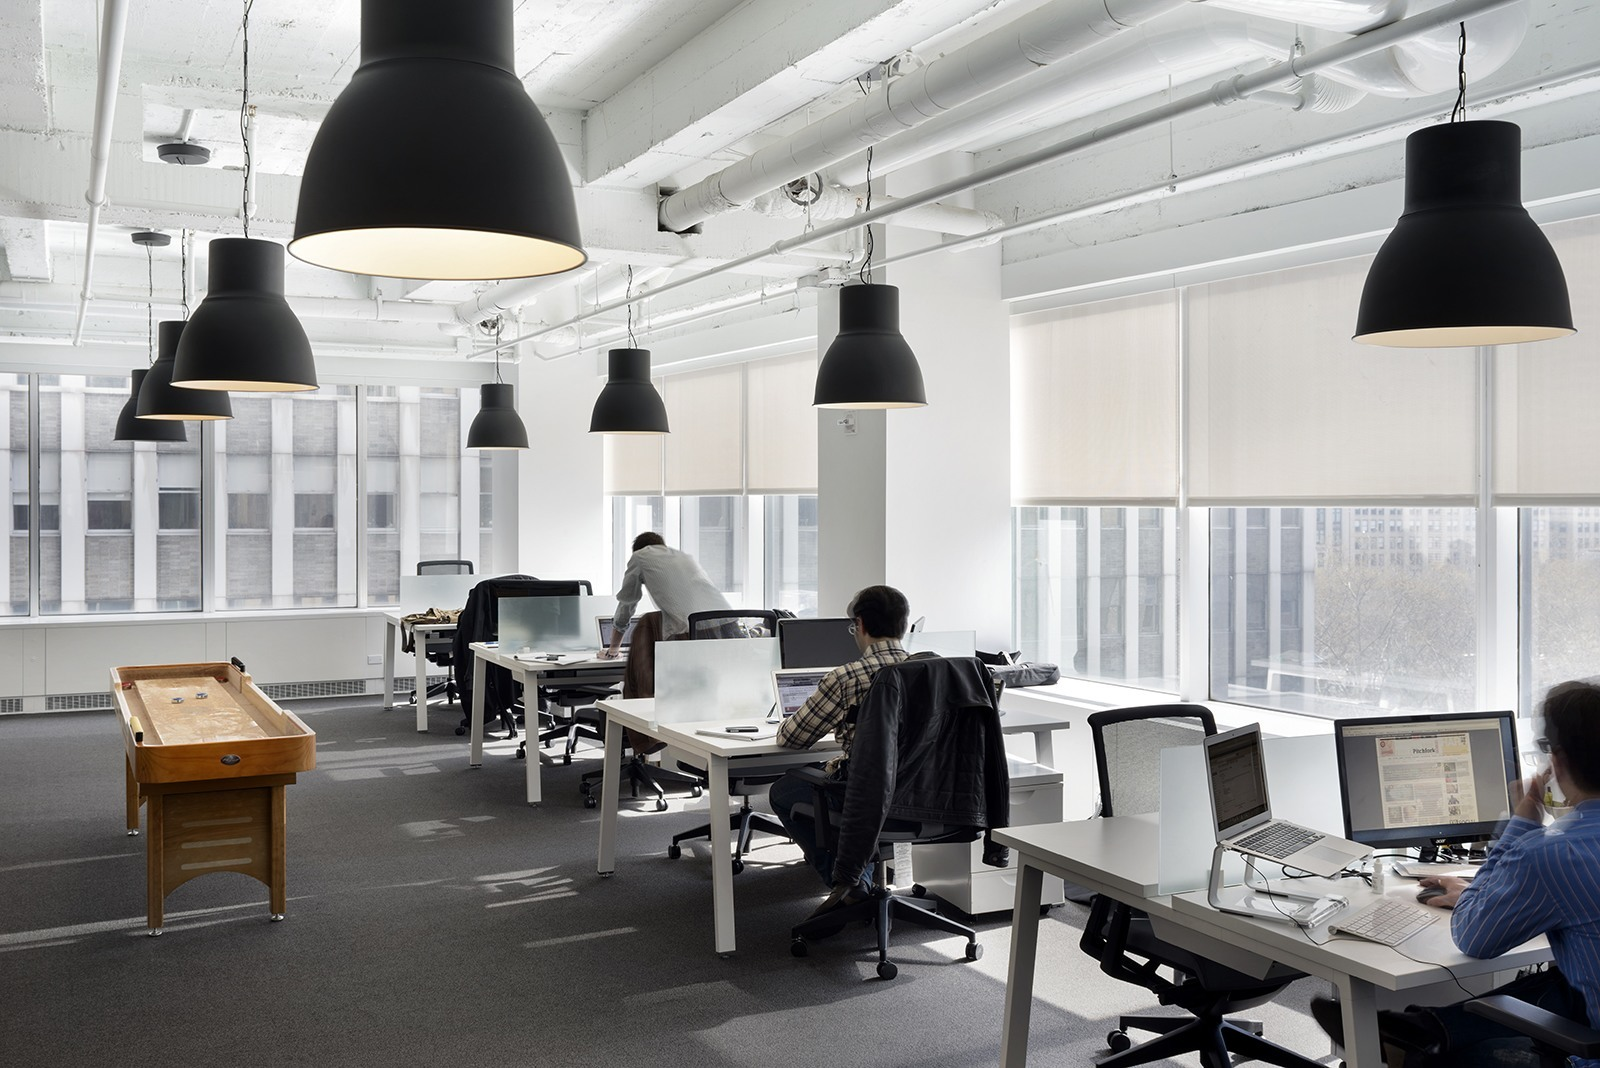 vox-media-nyc-office-2